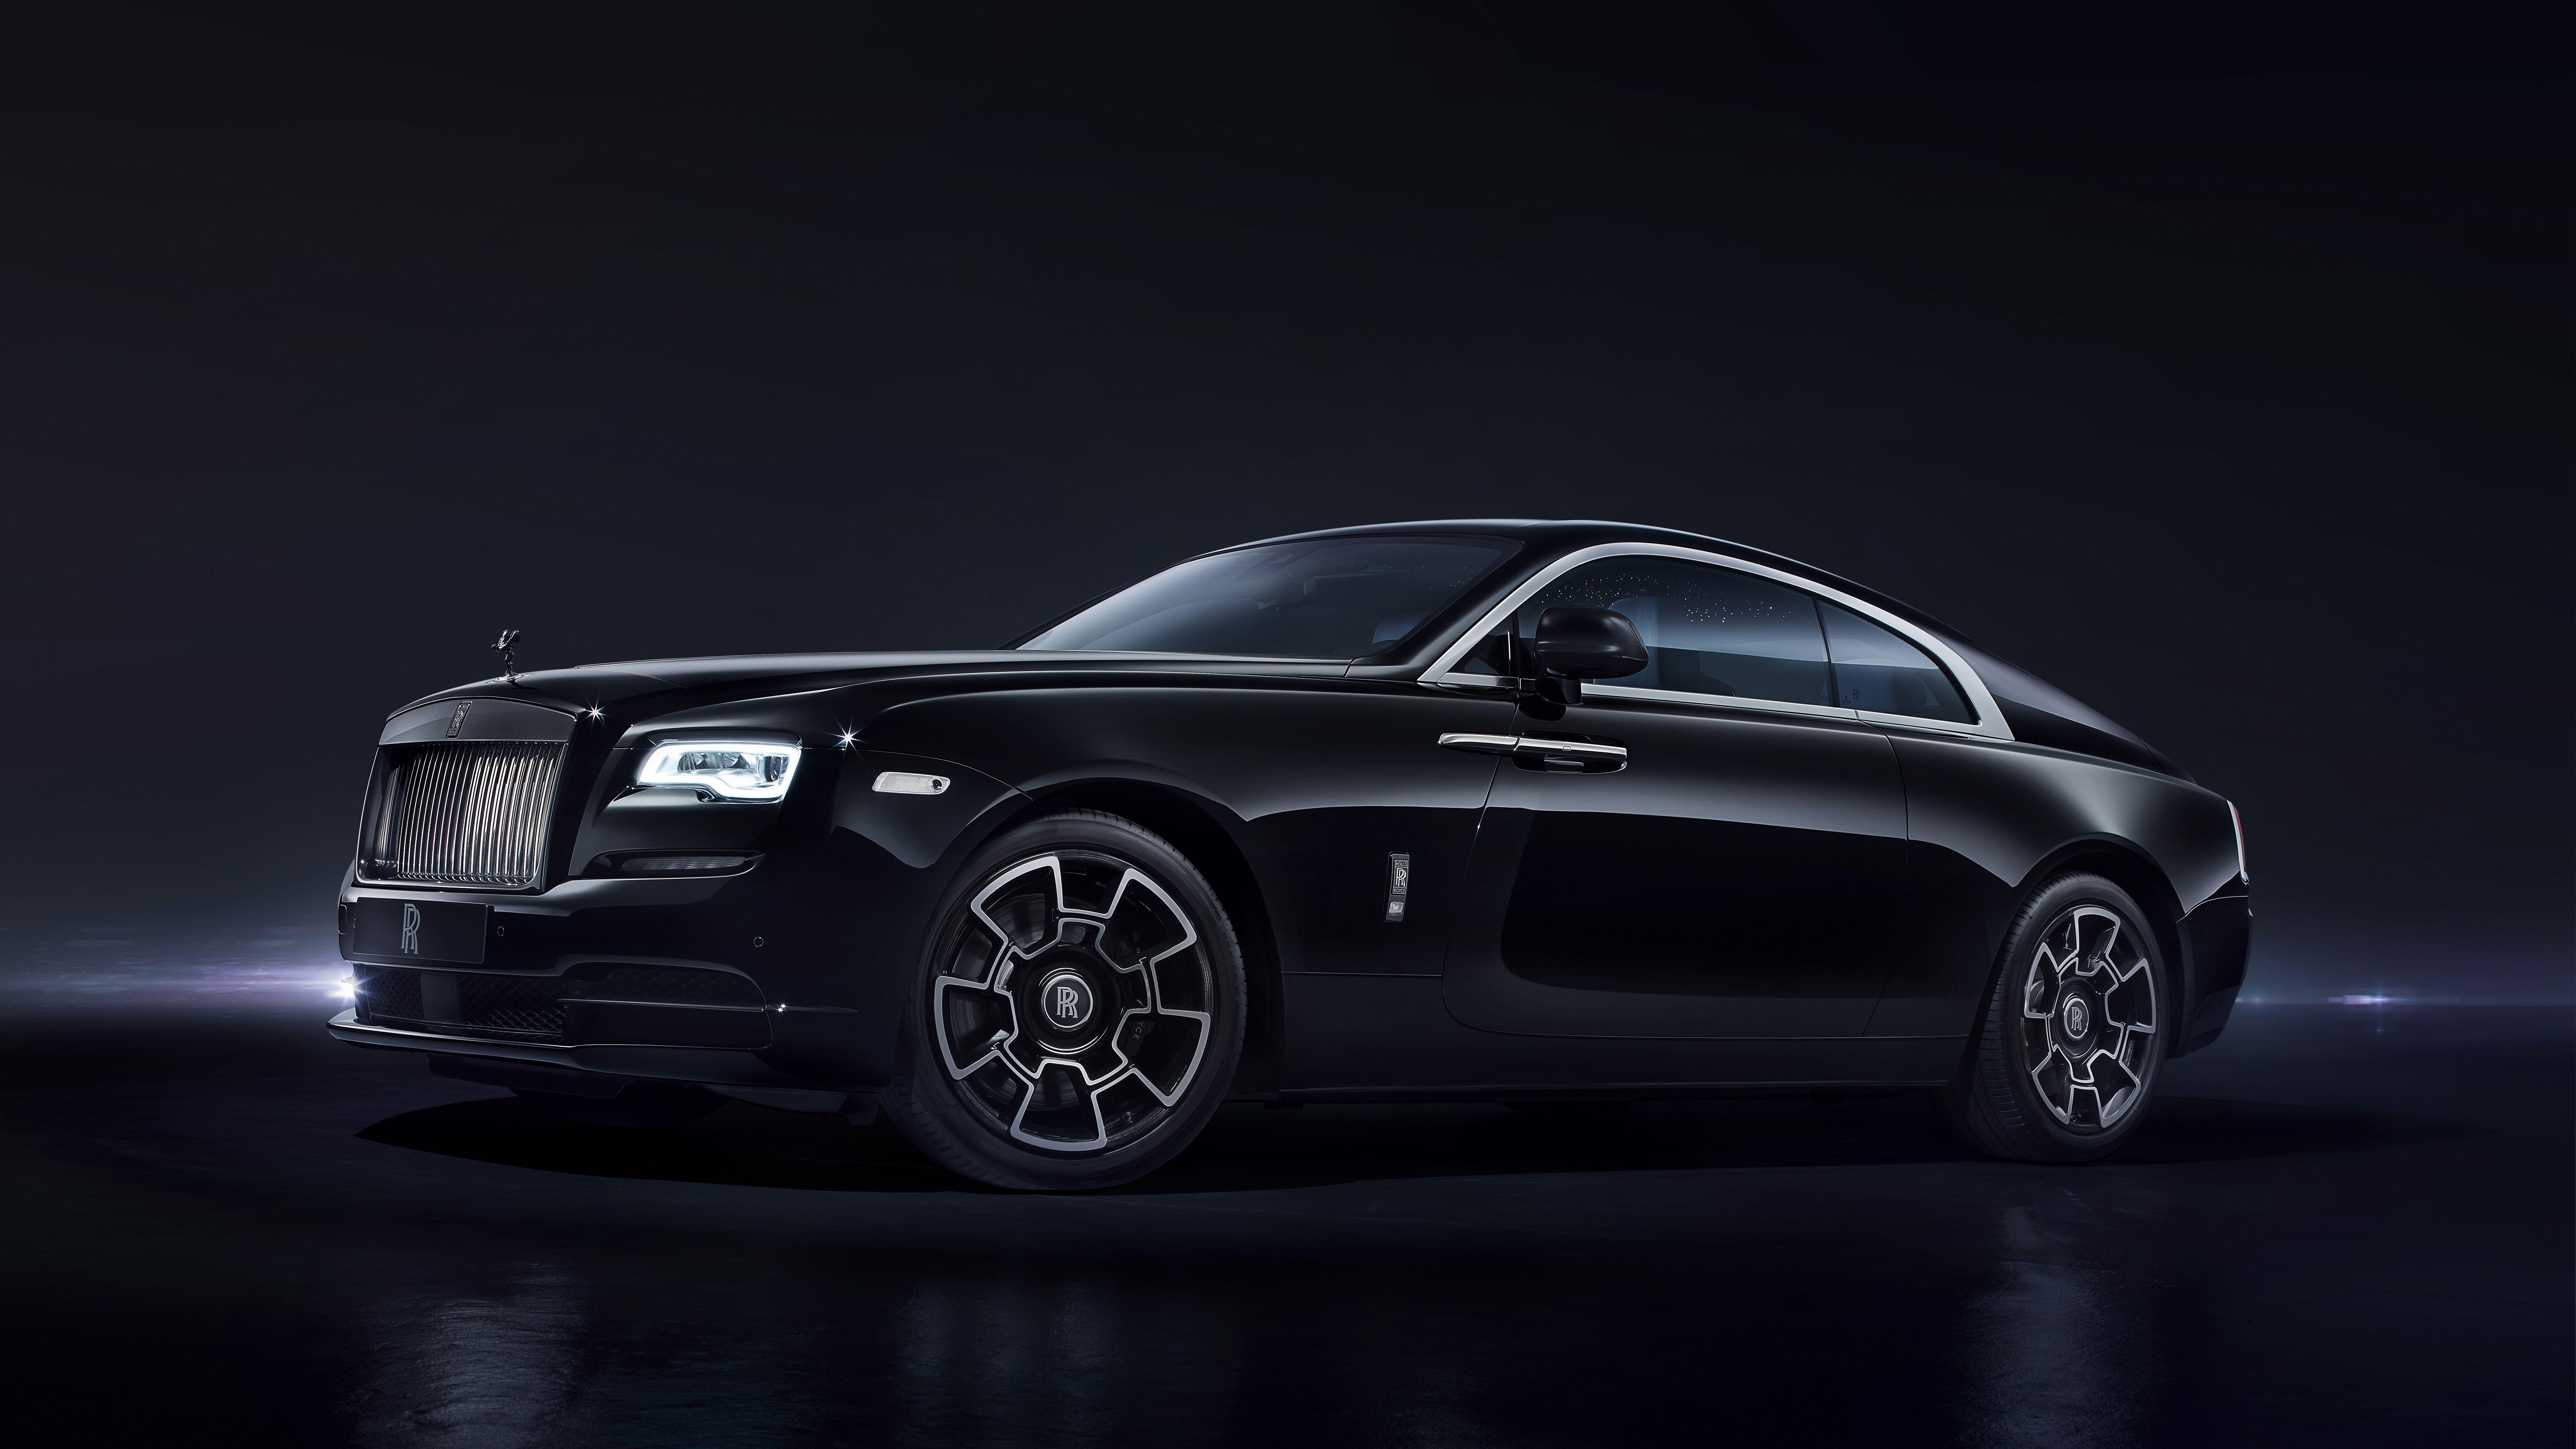 Rolls royce logo wallpapers for free download about